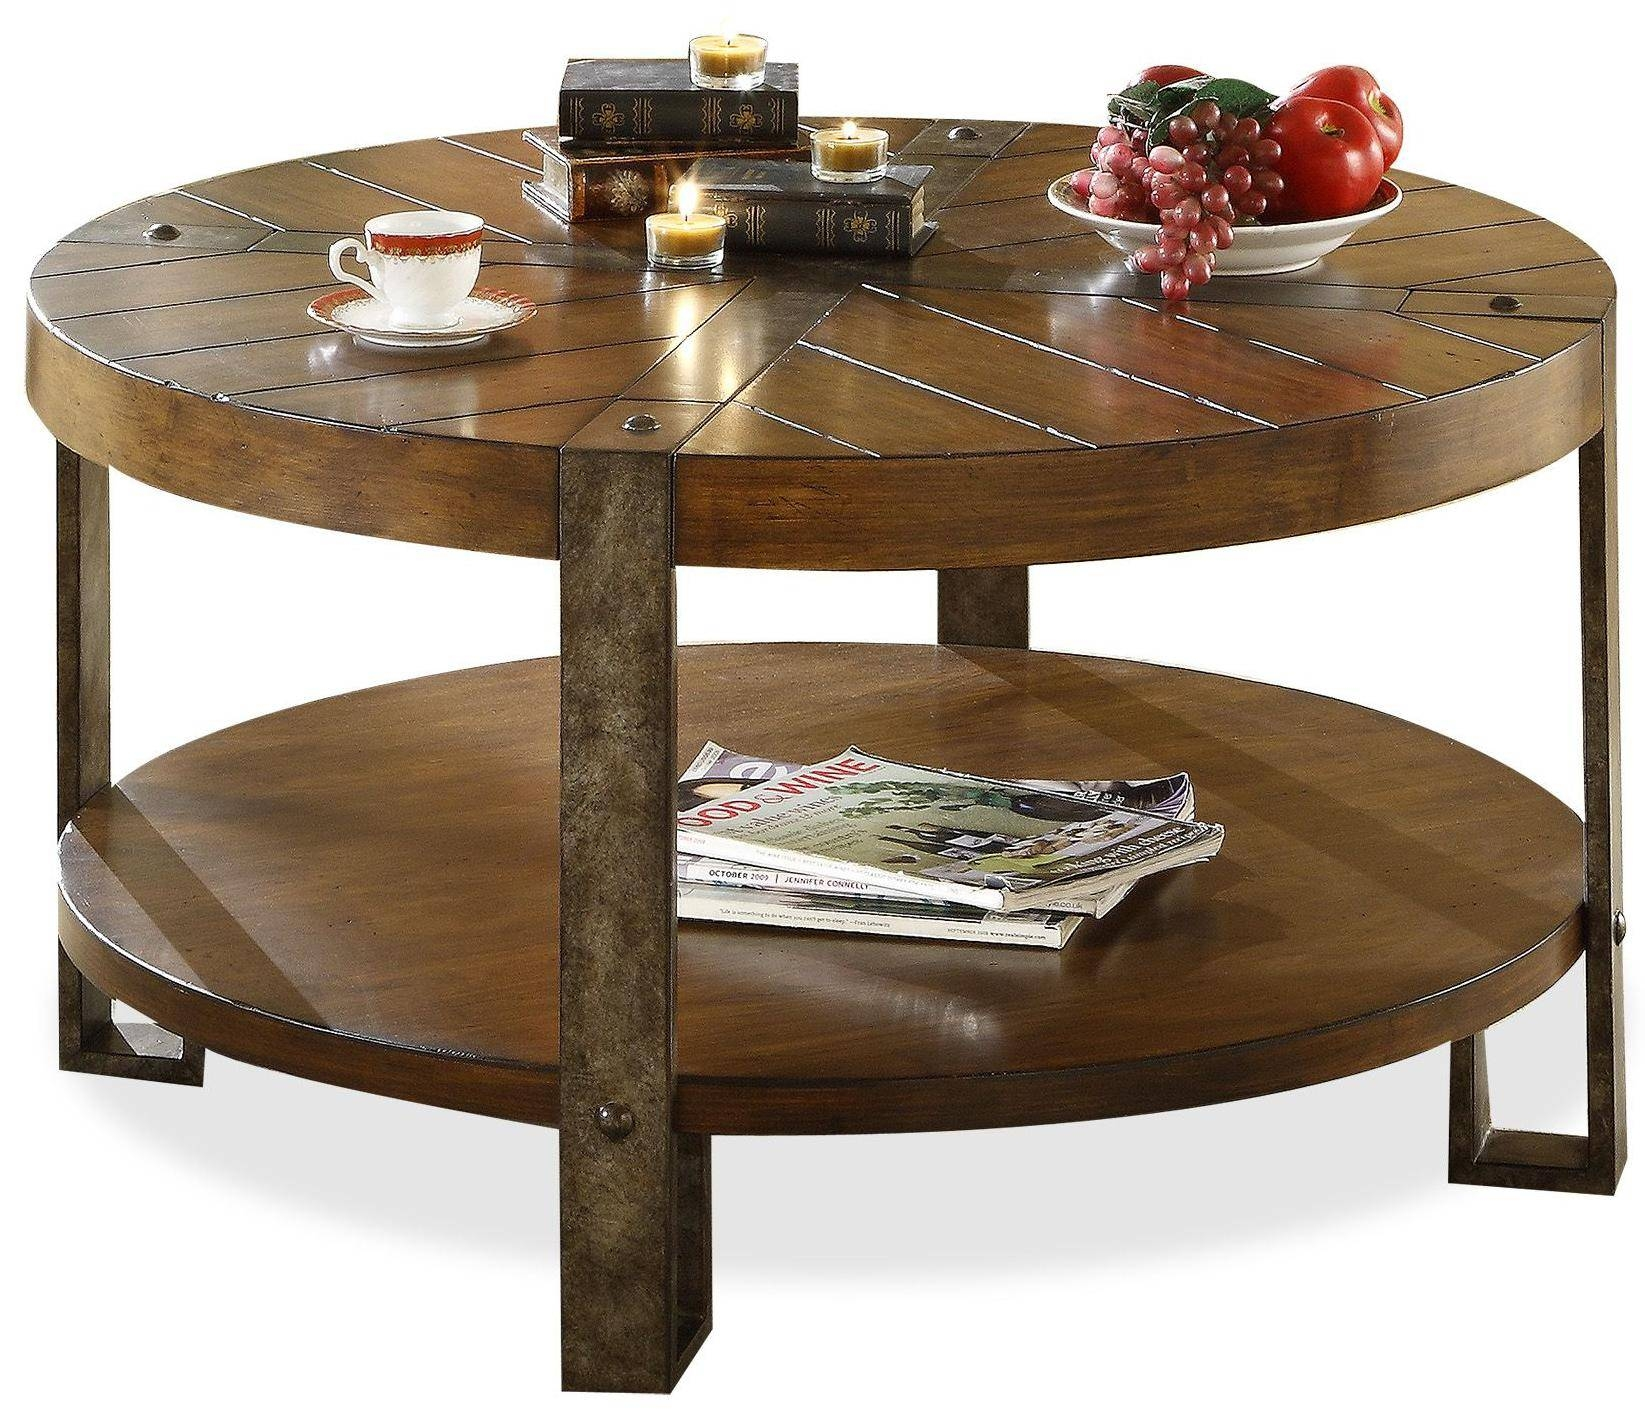 Incredible Round Coffee Table With Drawer With Coffee Table pertaining to Round Coffee Tables With Drawer (Image 19 of 30)